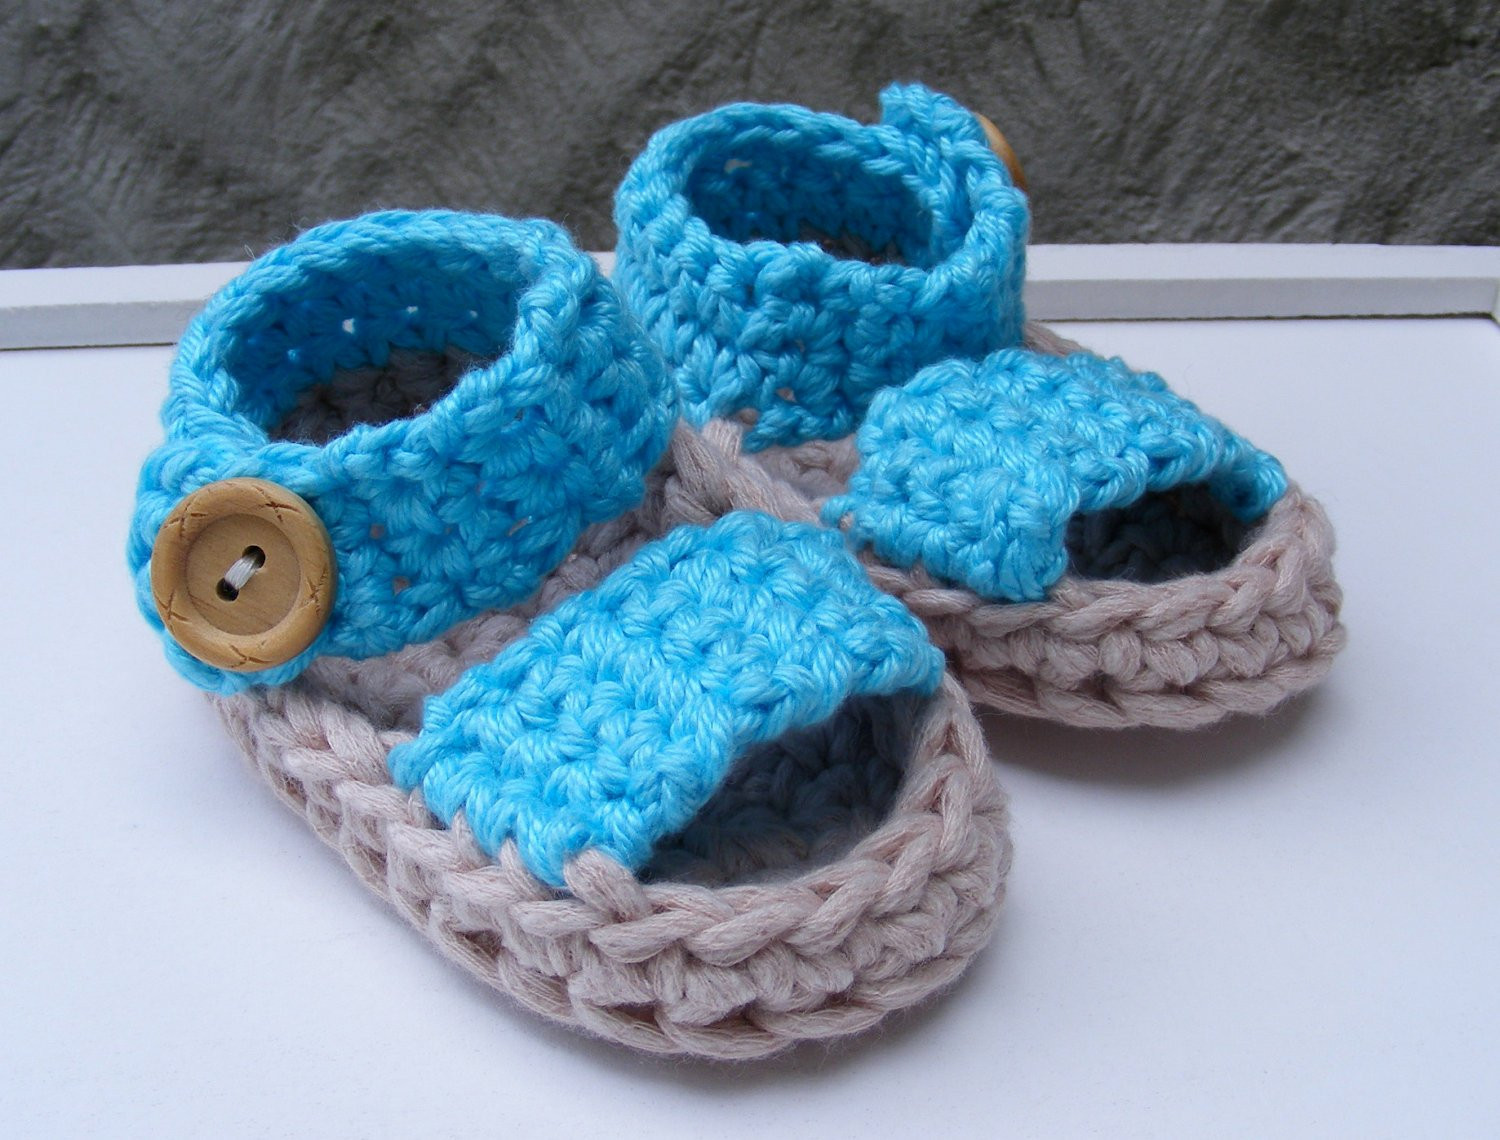 Baby Booties Crochet Pattern Inspirational Baby Booties Crochet Pattern Spring Summer Baby Of Top 49 Pictures Baby Booties Crochet Pattern